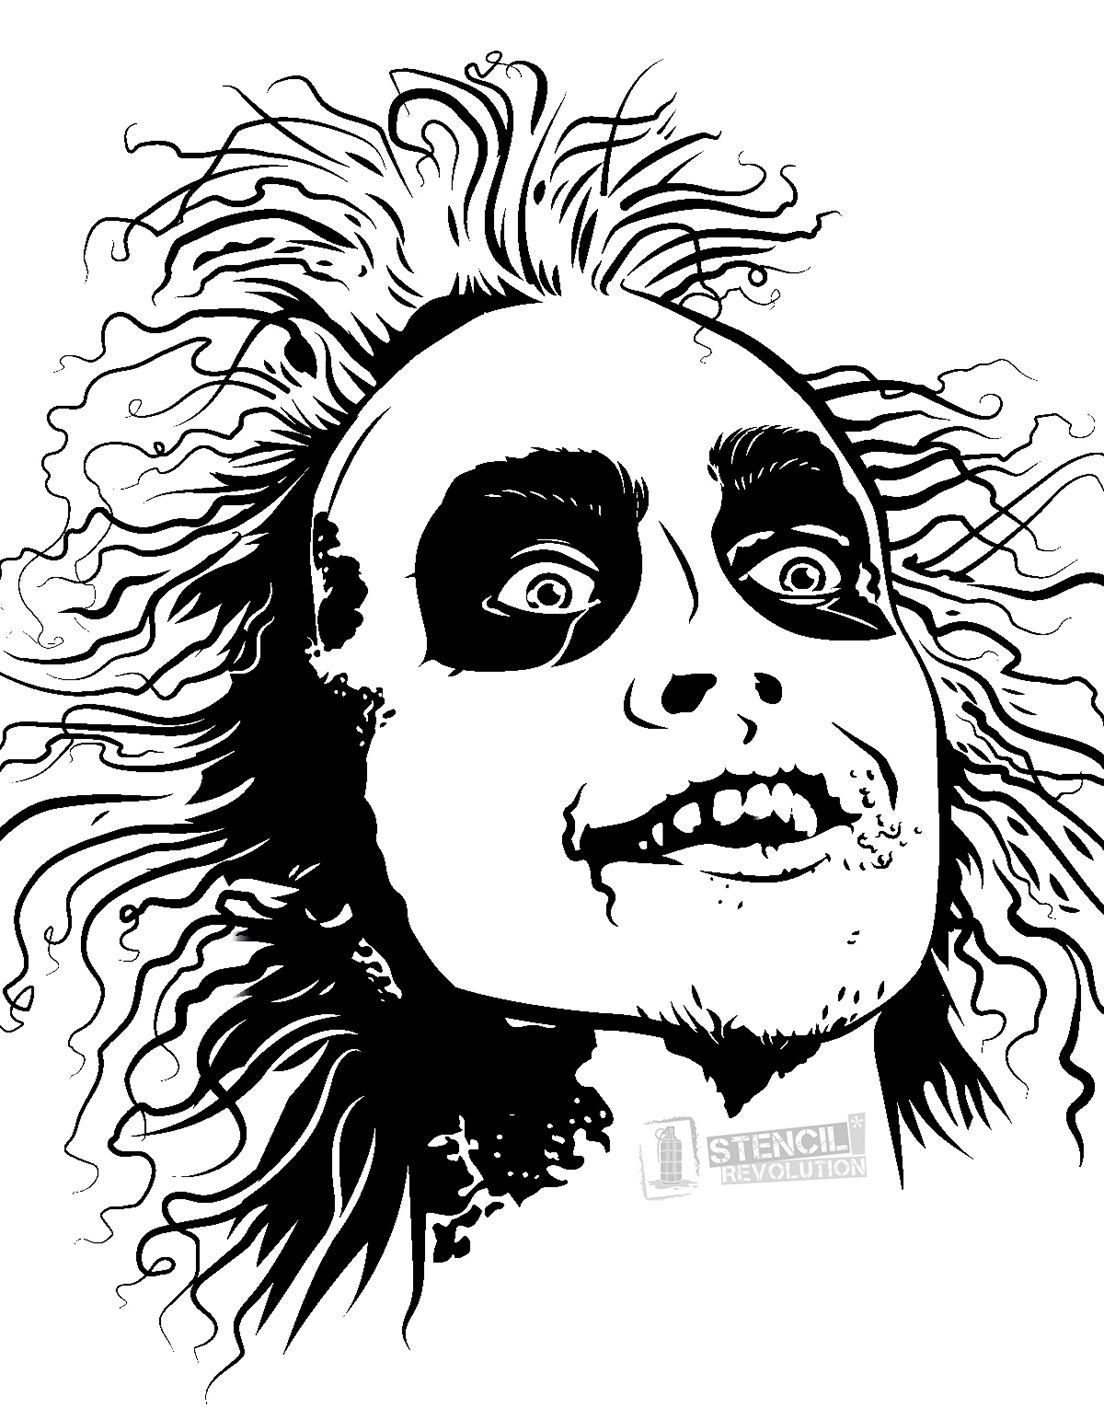 Download Your Free Beetlejuice Stencil Here Save Time And Start Your Project In Minutes Get Printable Stencils For Art And Des Beetlejuice Silhouette Art Art